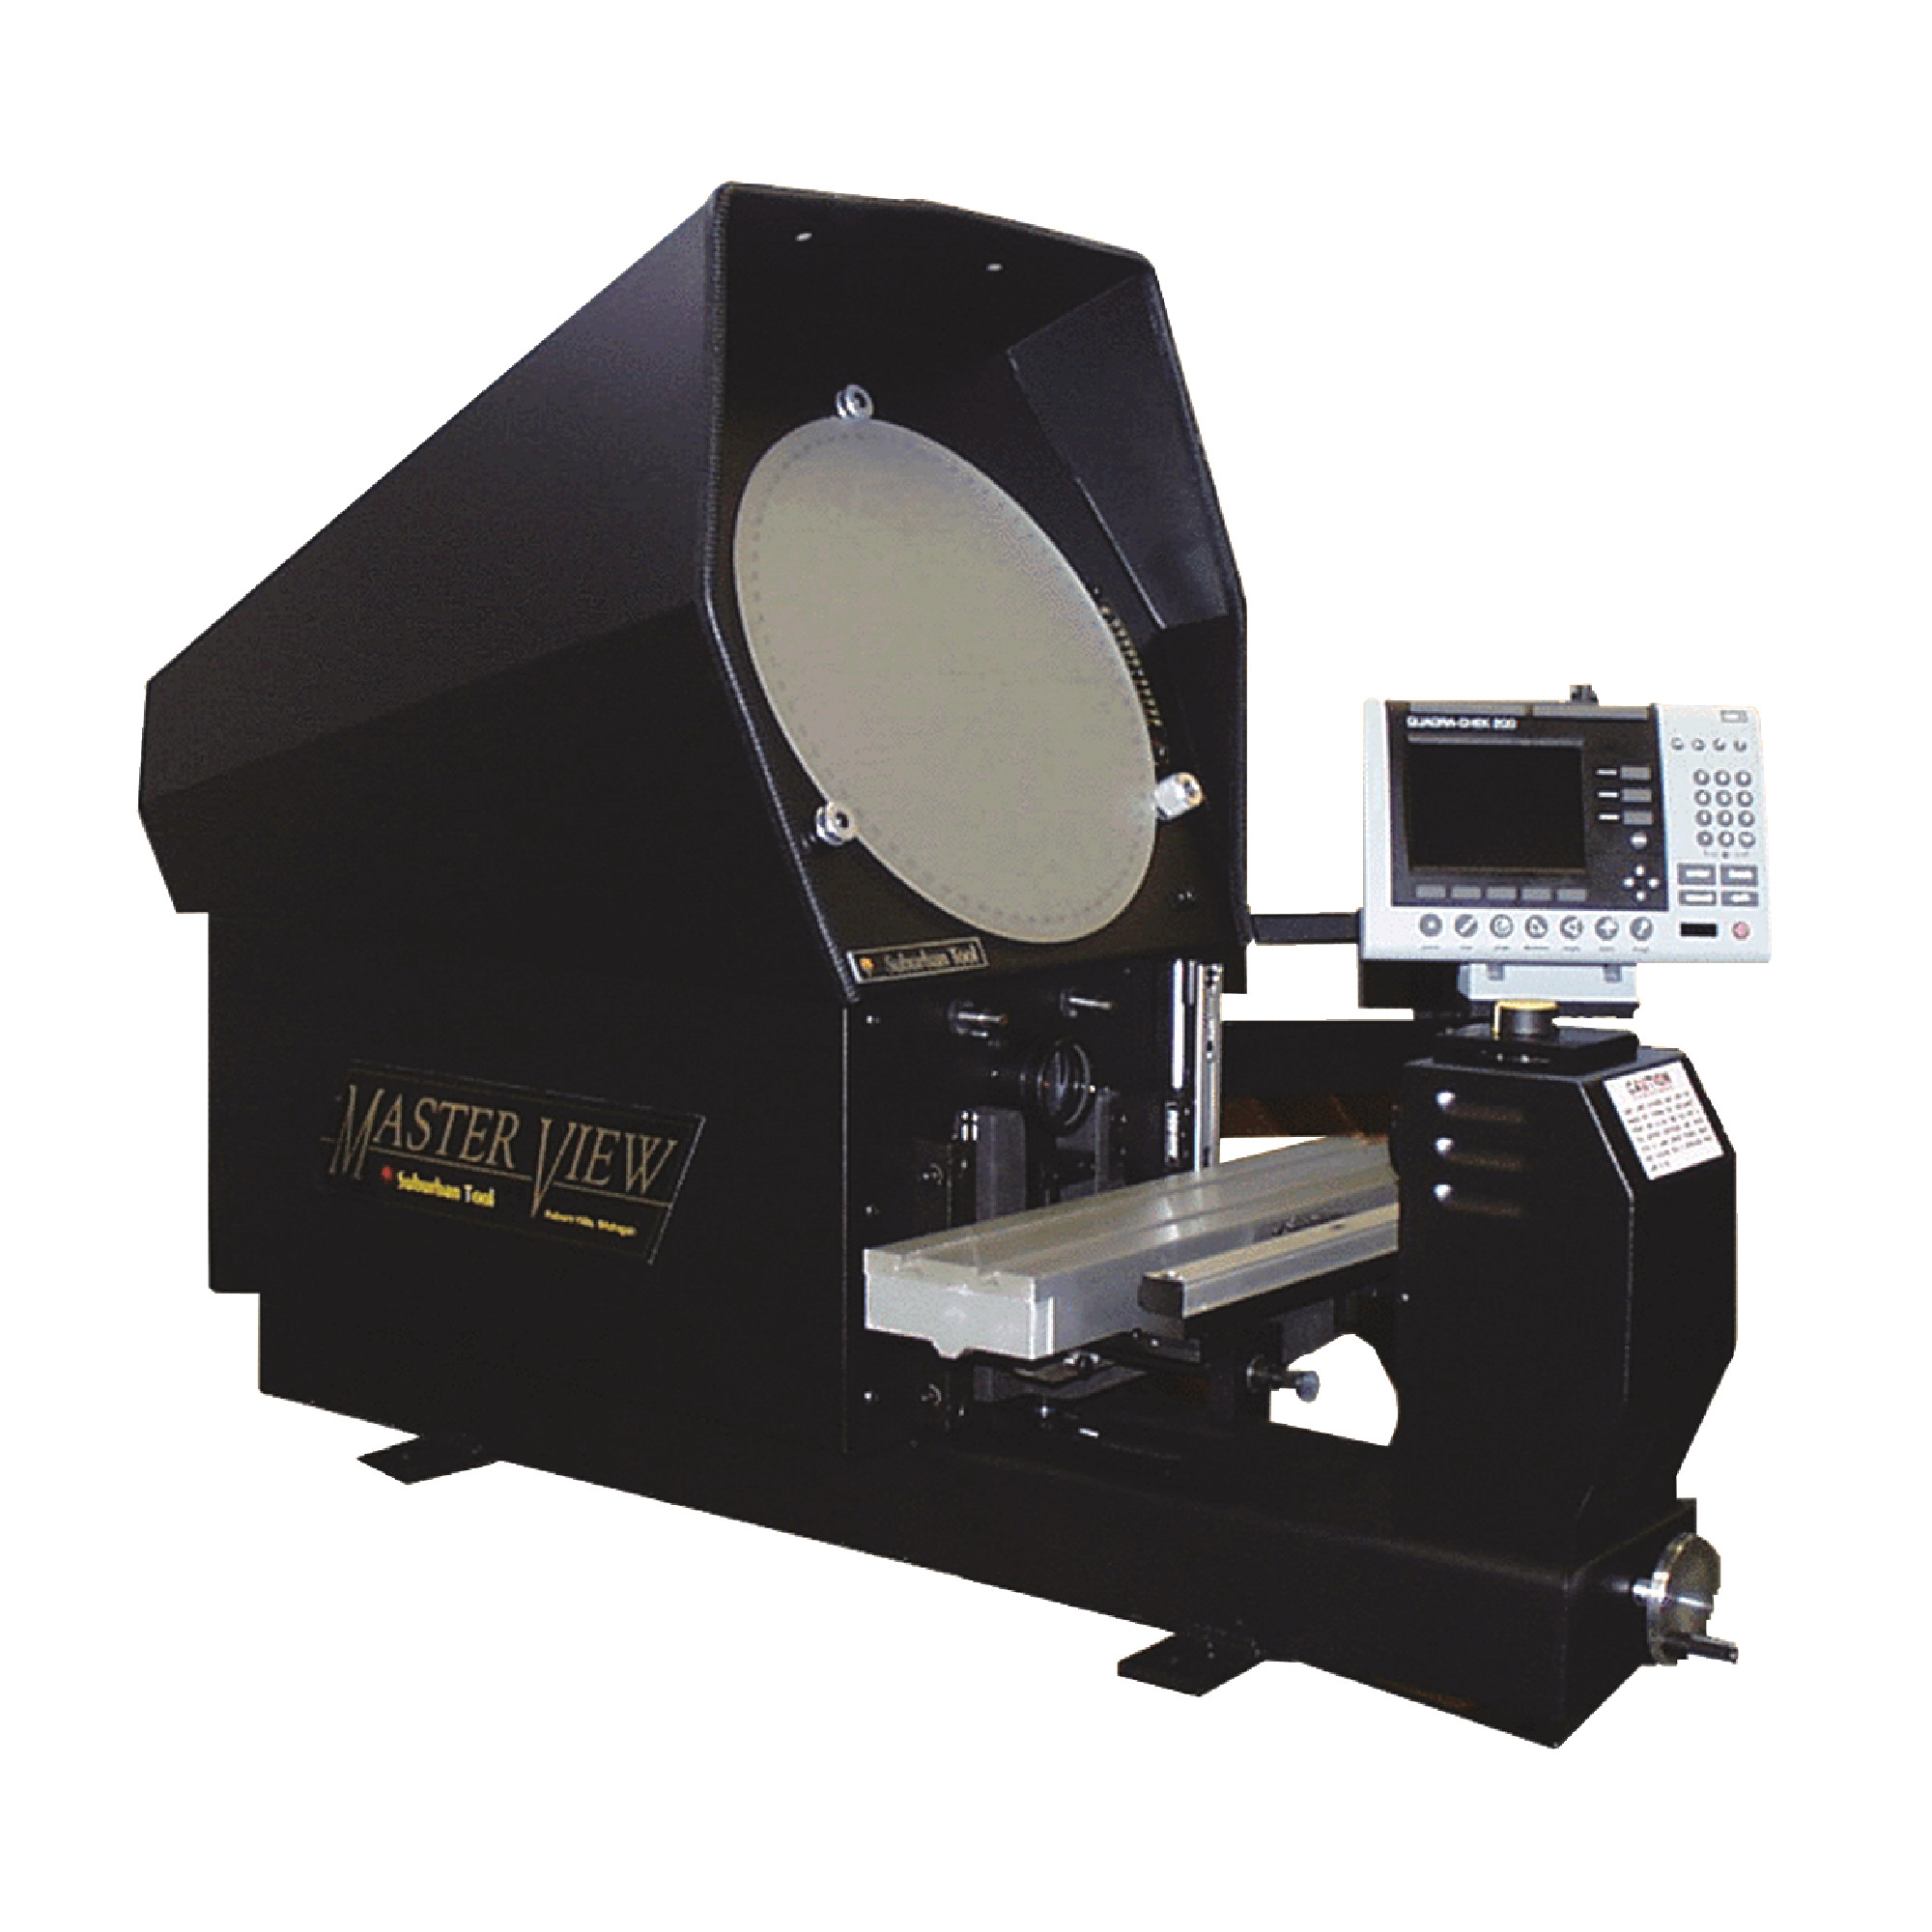 """Master View 14"""" Optical Comparator"""